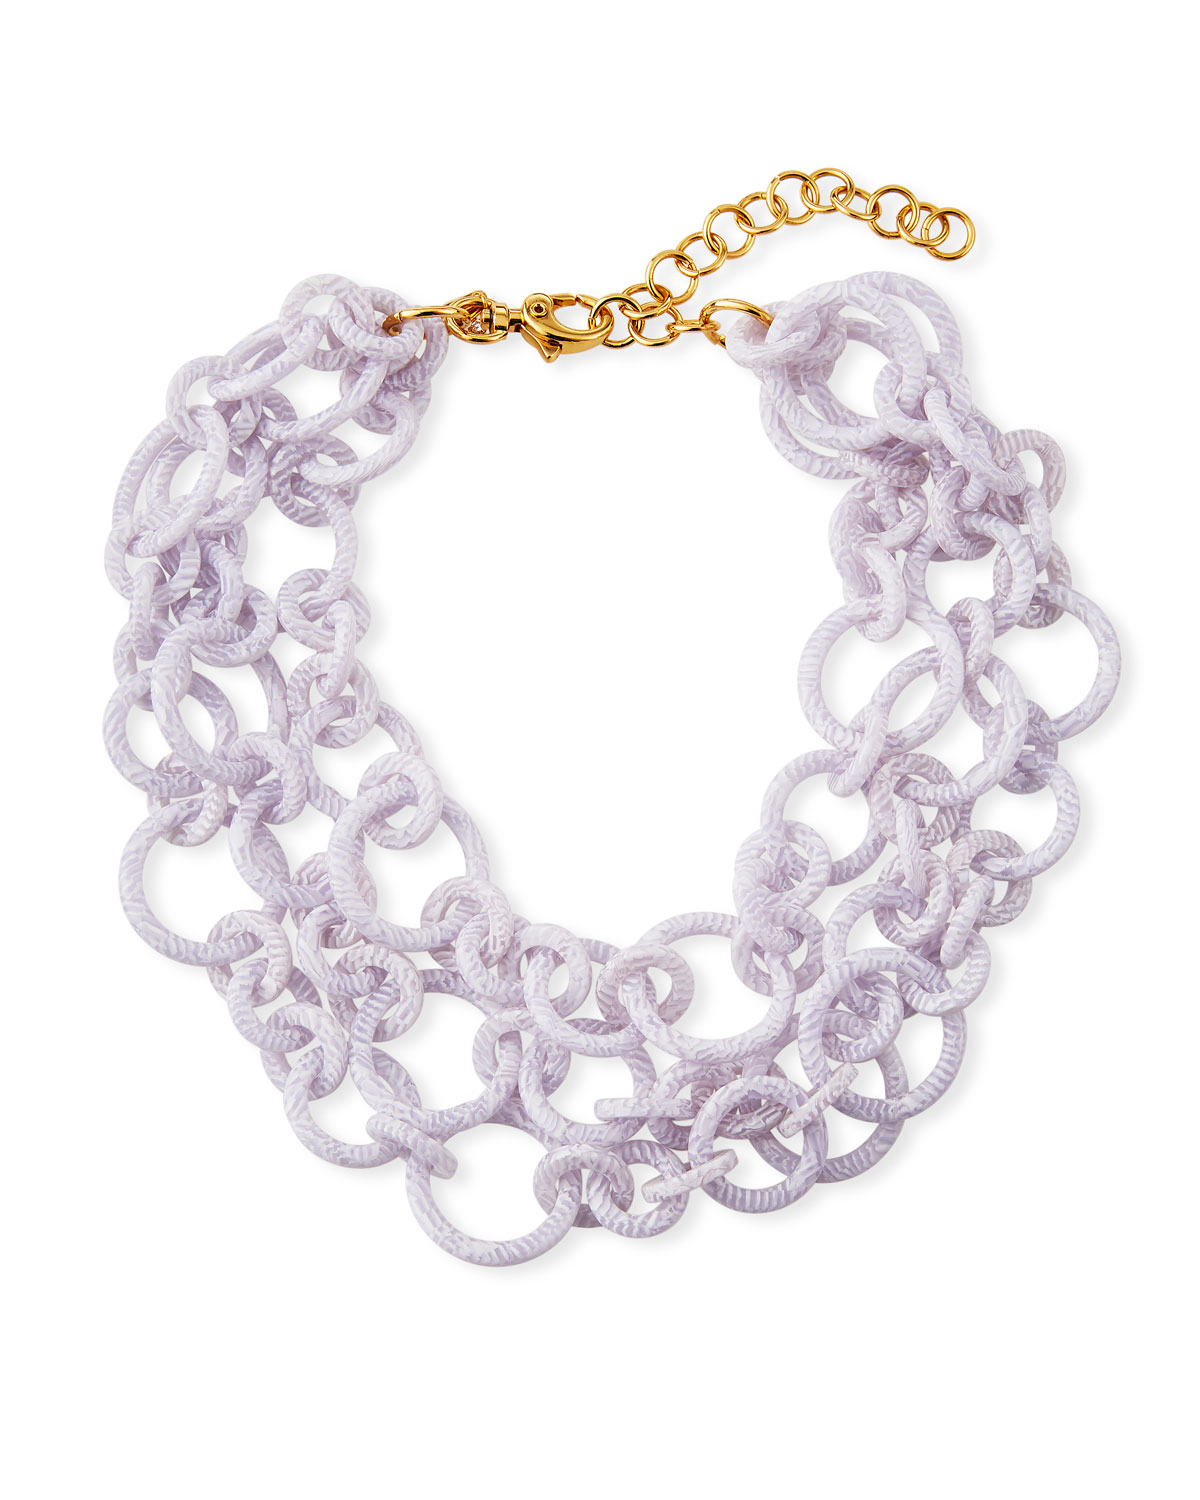 Lele Sadoughi Jewelries BROADWAY 3-LAYER NECKLACE, WHITE